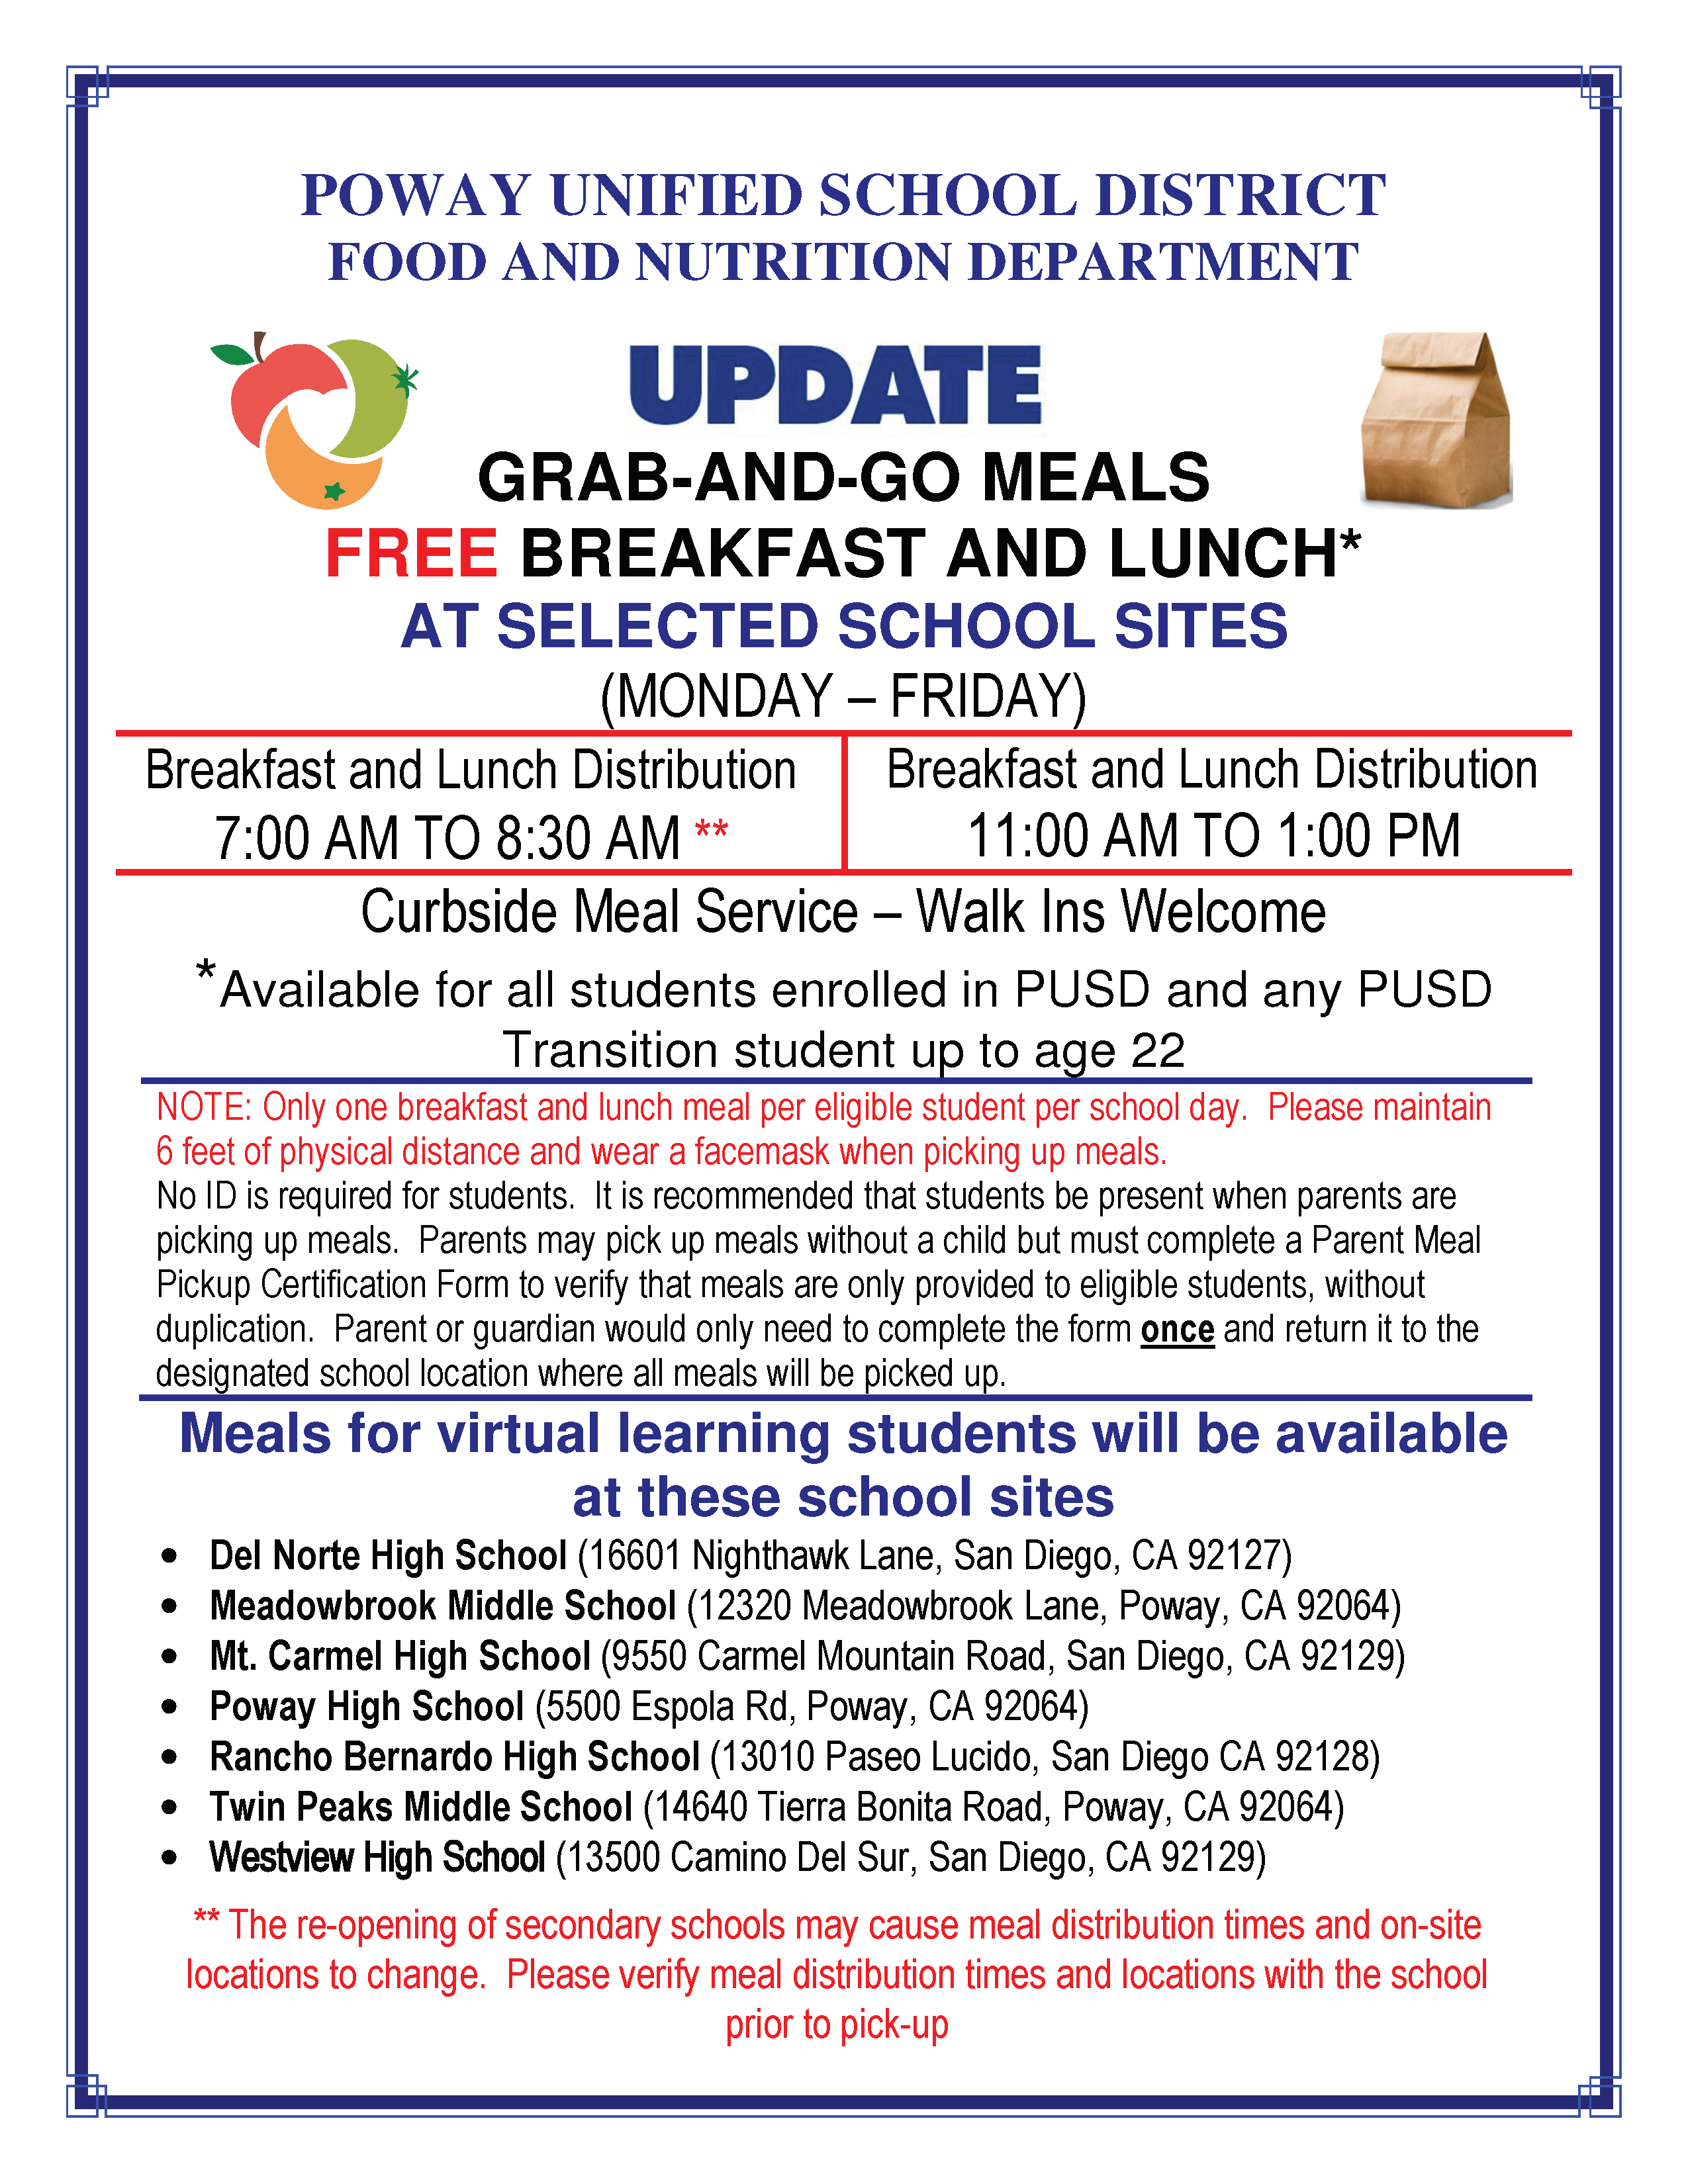 Department_pdf/Updated Poway Meal Options Flyer (3b).png